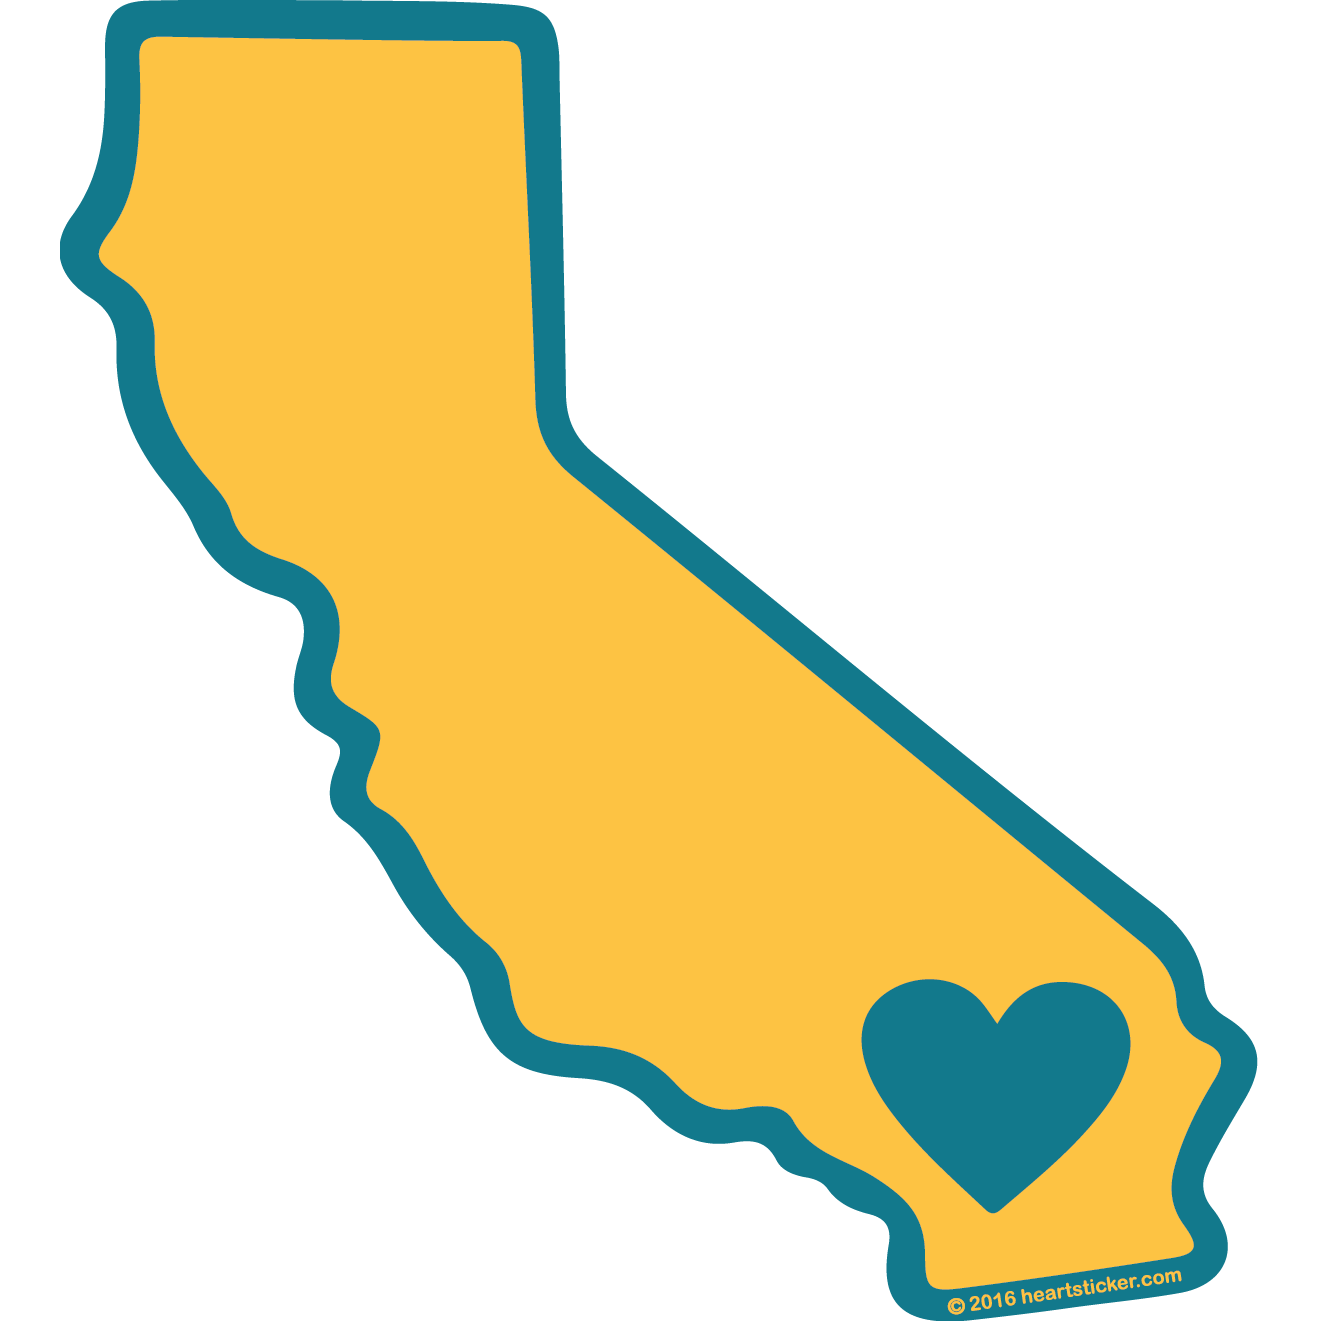 trending california stickers and patches the heart sticker company